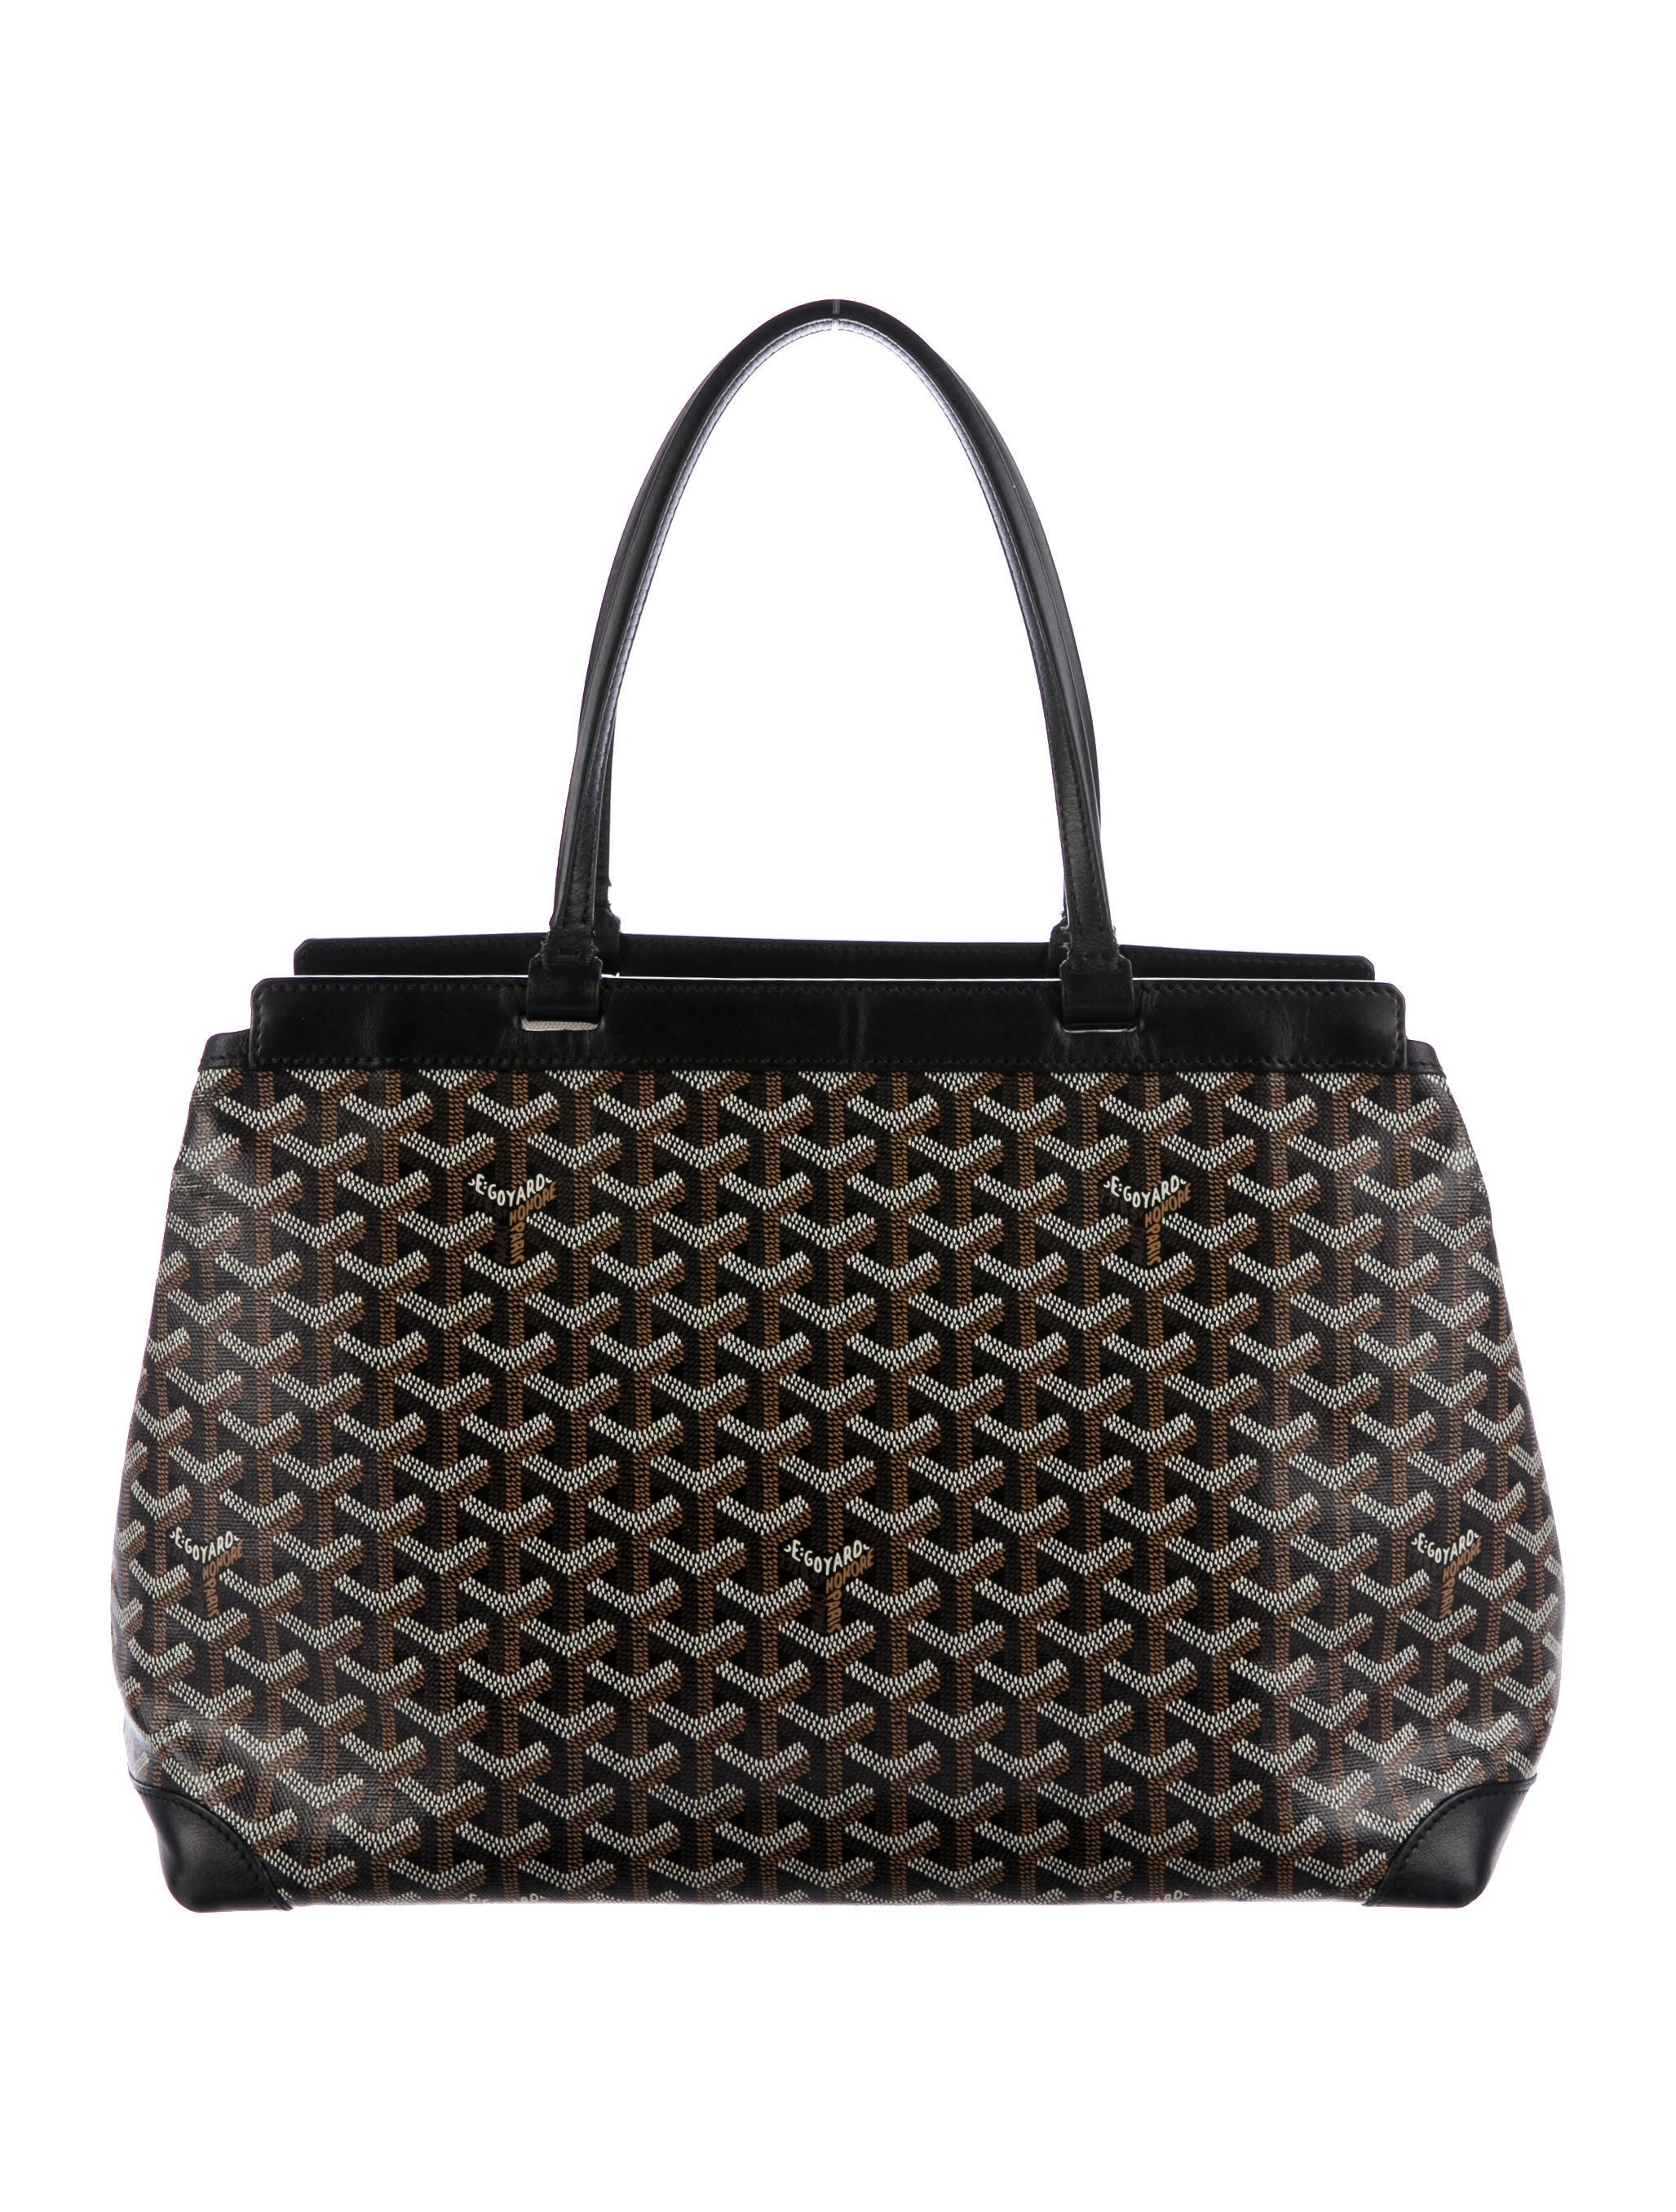 belle chasse black single women Black and mulitcolor hand-painted goyardine coated canvas goyard bellechasse pm with silver-tone hardware, cognac leather trim, dual flat top handles, beige woven interior lining, single pocket at interior wall with prong closure and lobster clasp closure at top.